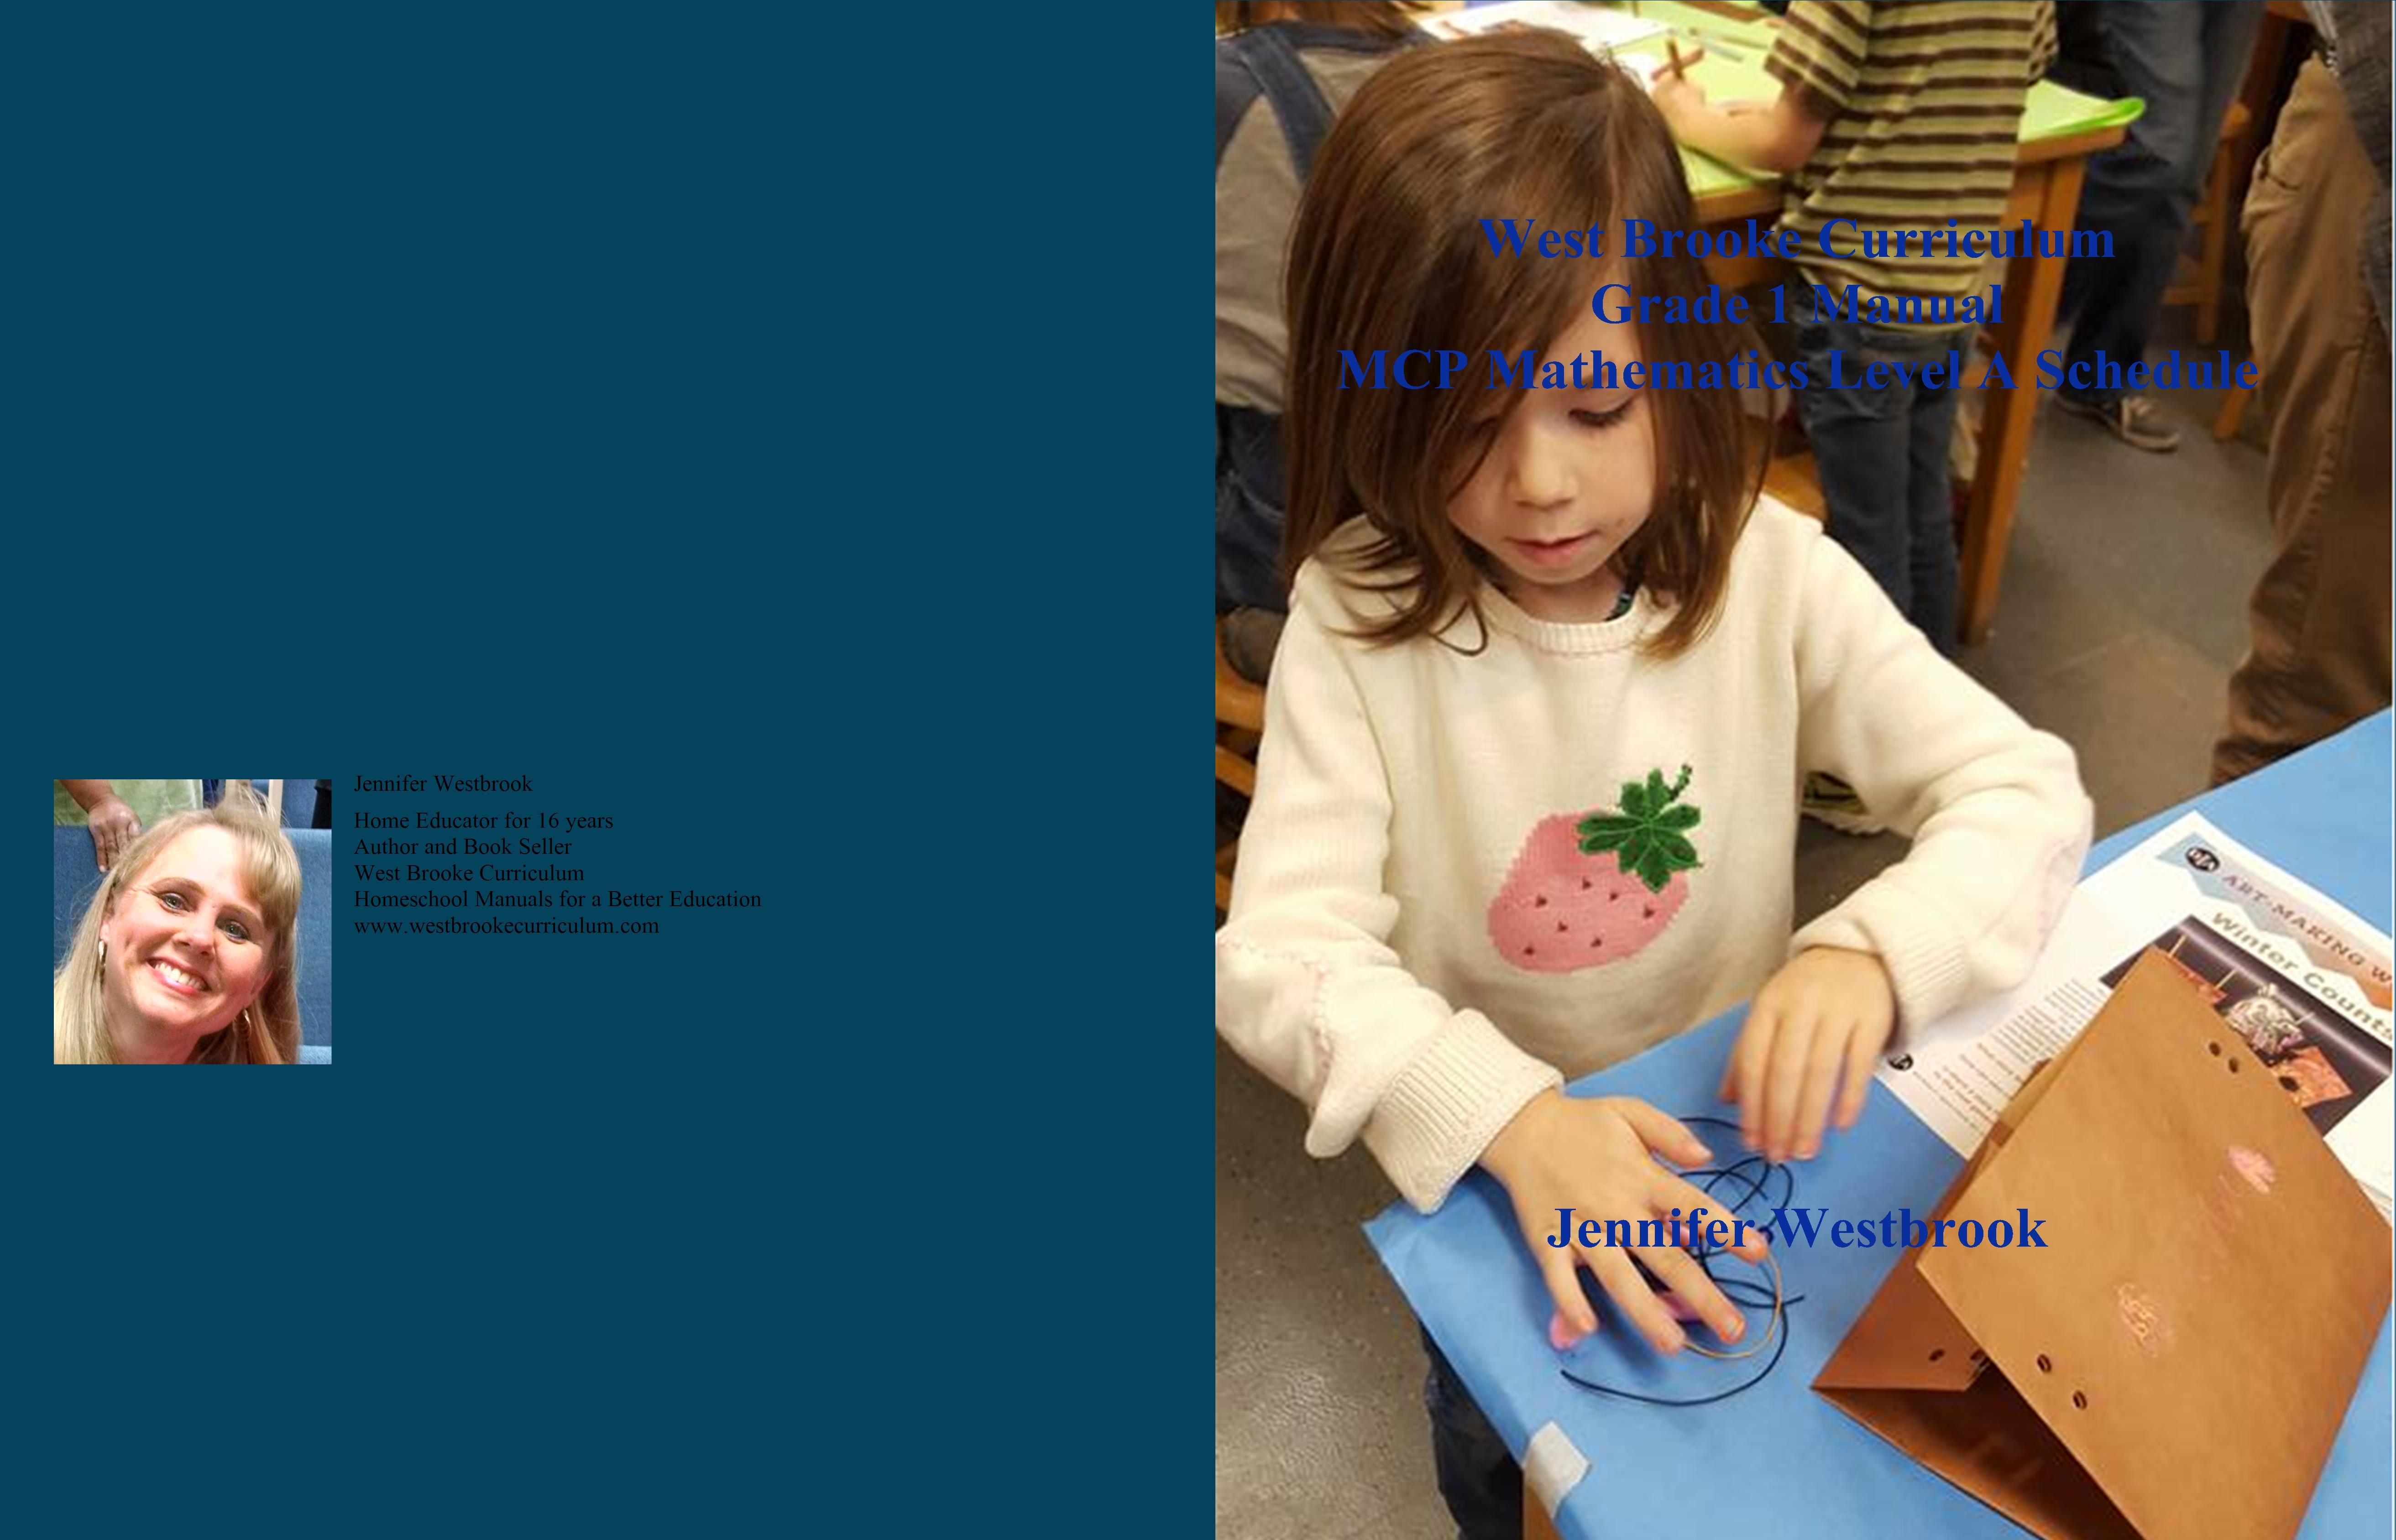 West Brooke Curriculum Grade 1 Manual MCP Mathematics Level A Schedule cover image